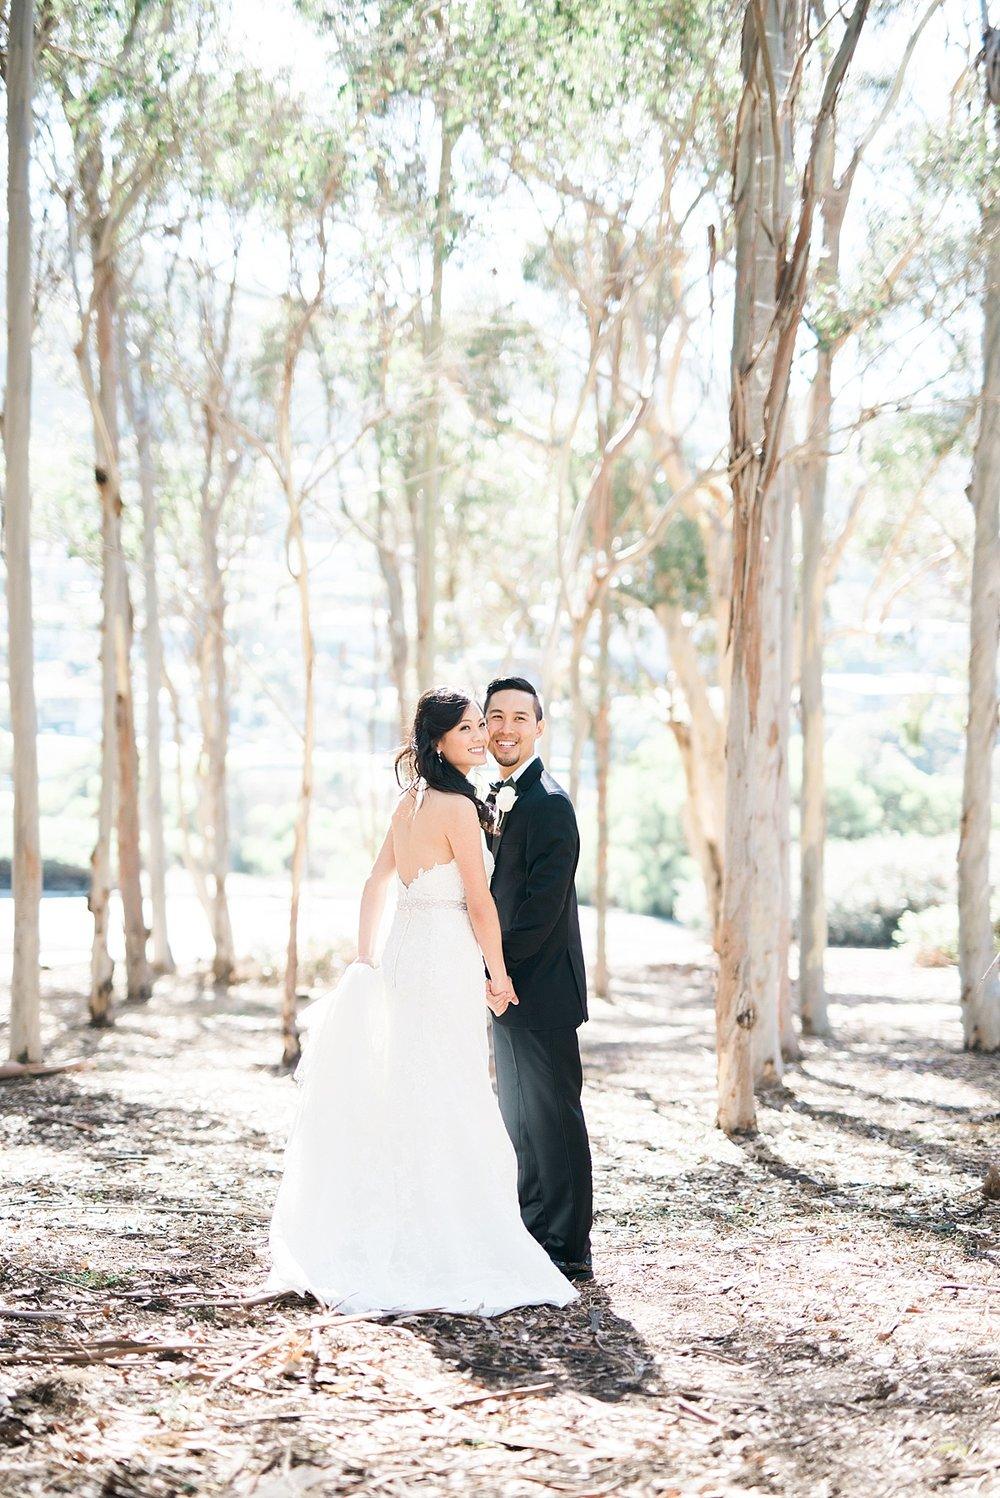 Double-Tree-San-Pedro-Wedding-Photographer-Krissy-Rich-Carissa-Woo-Photography_0037.jpg